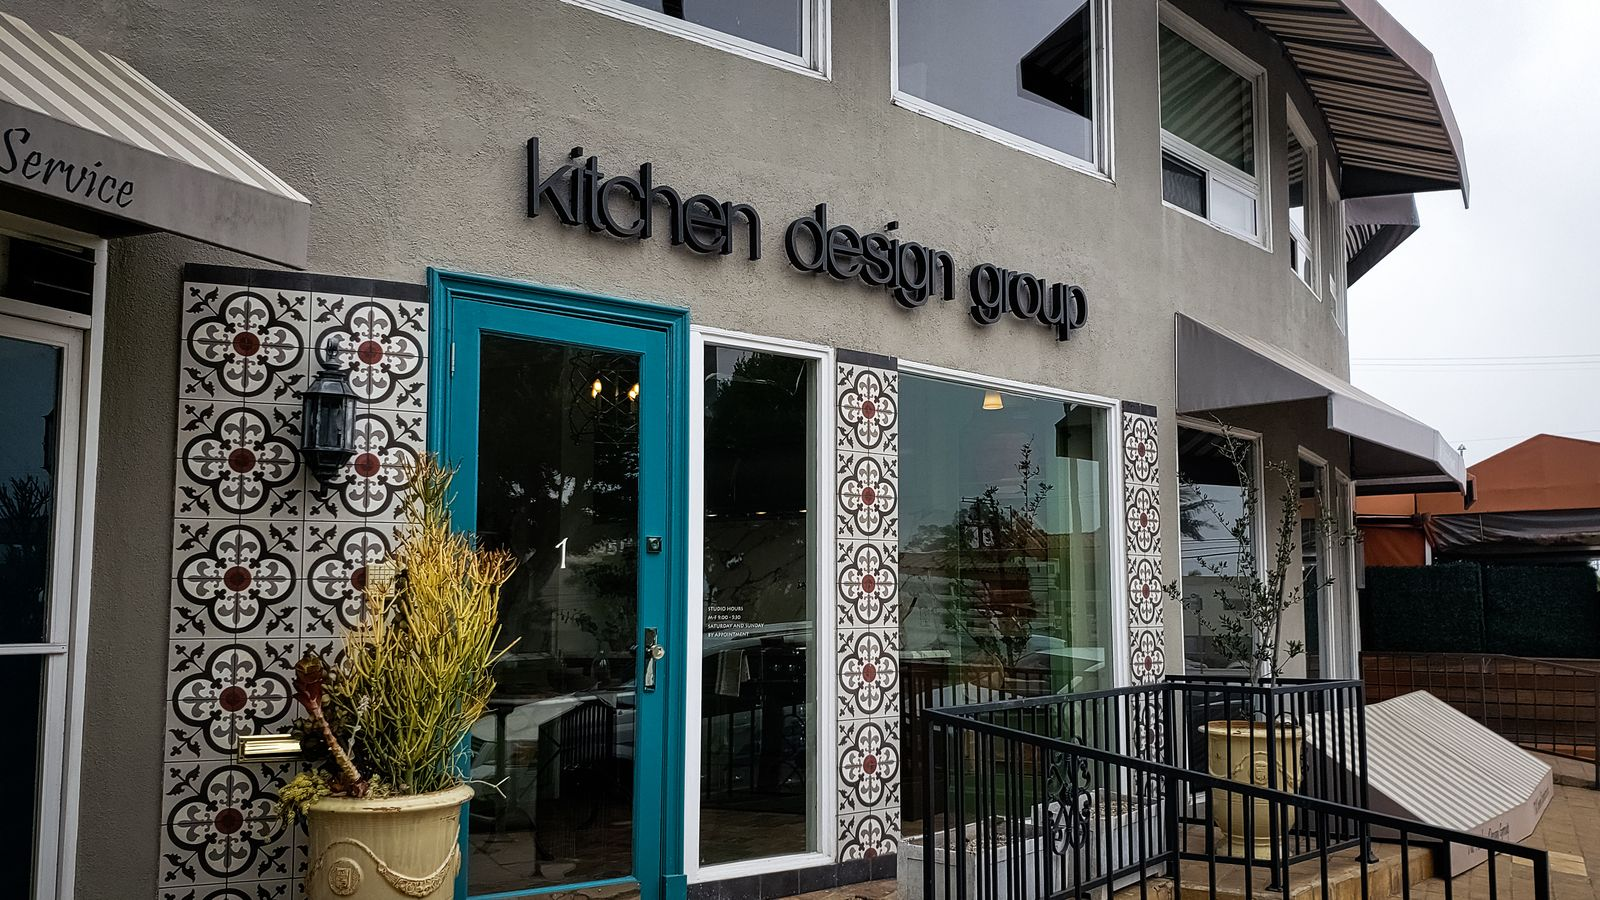 kitchen design group sign